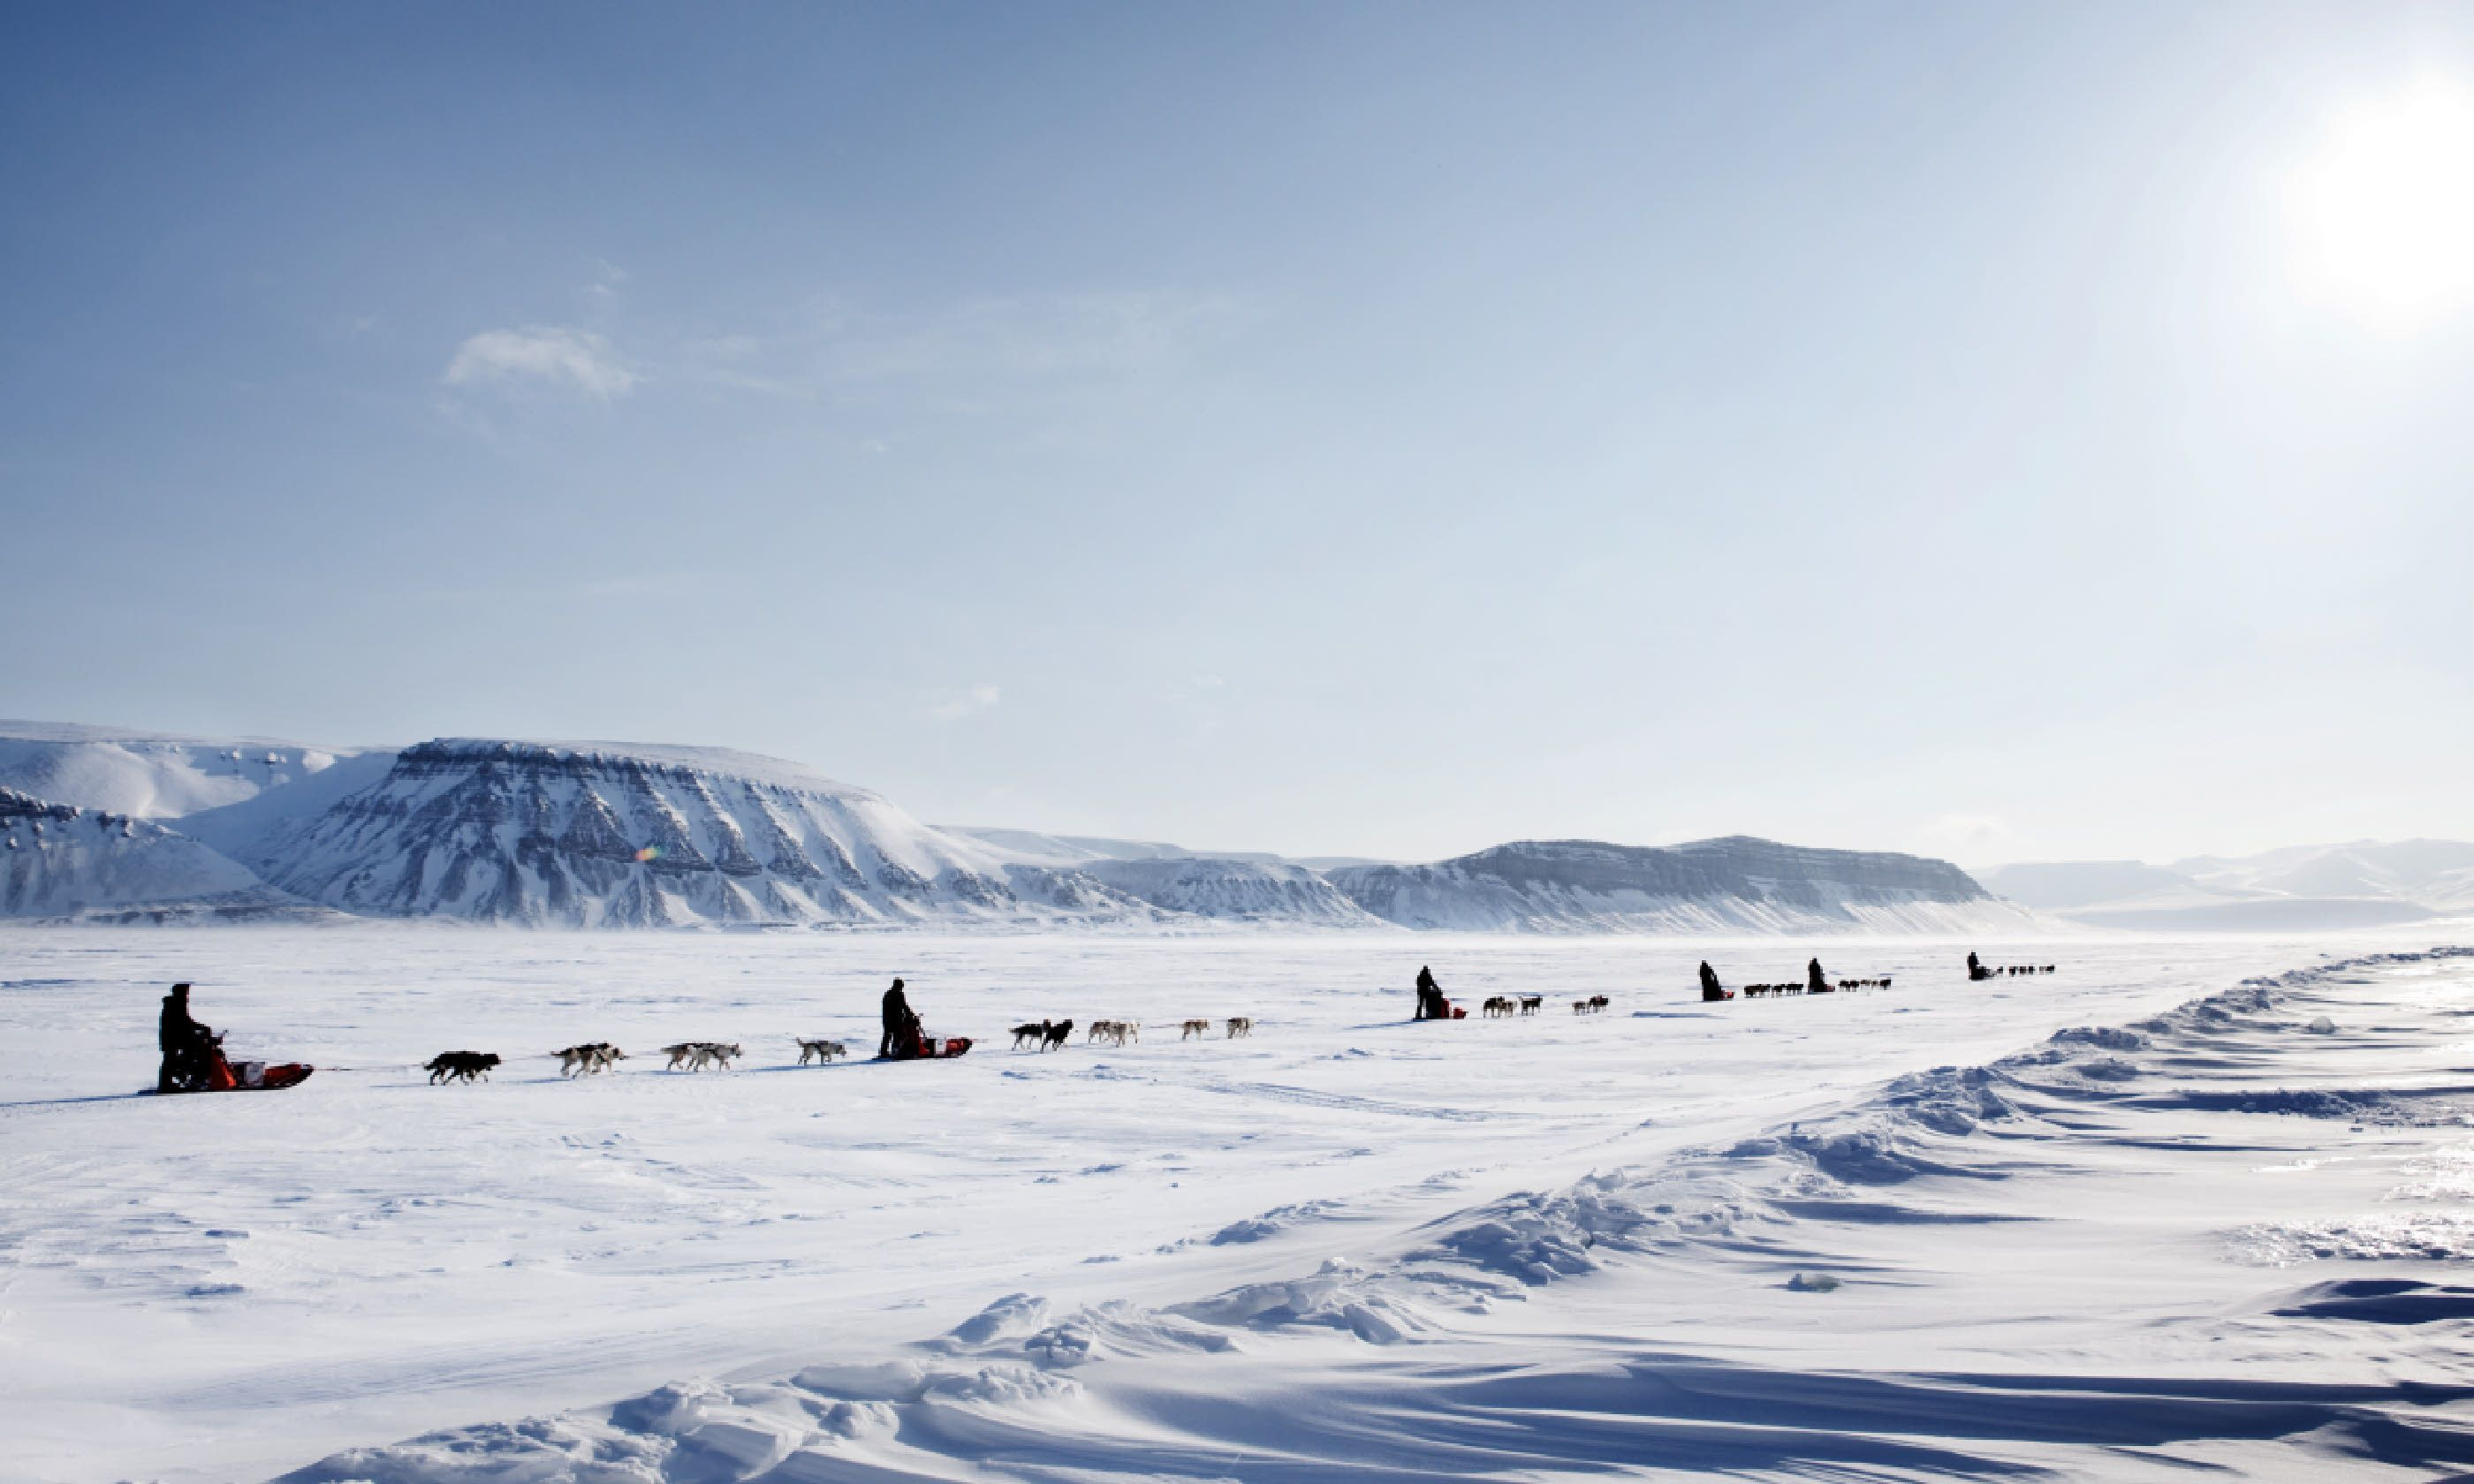 Dog sled expedition, Norway (Shutterstock)